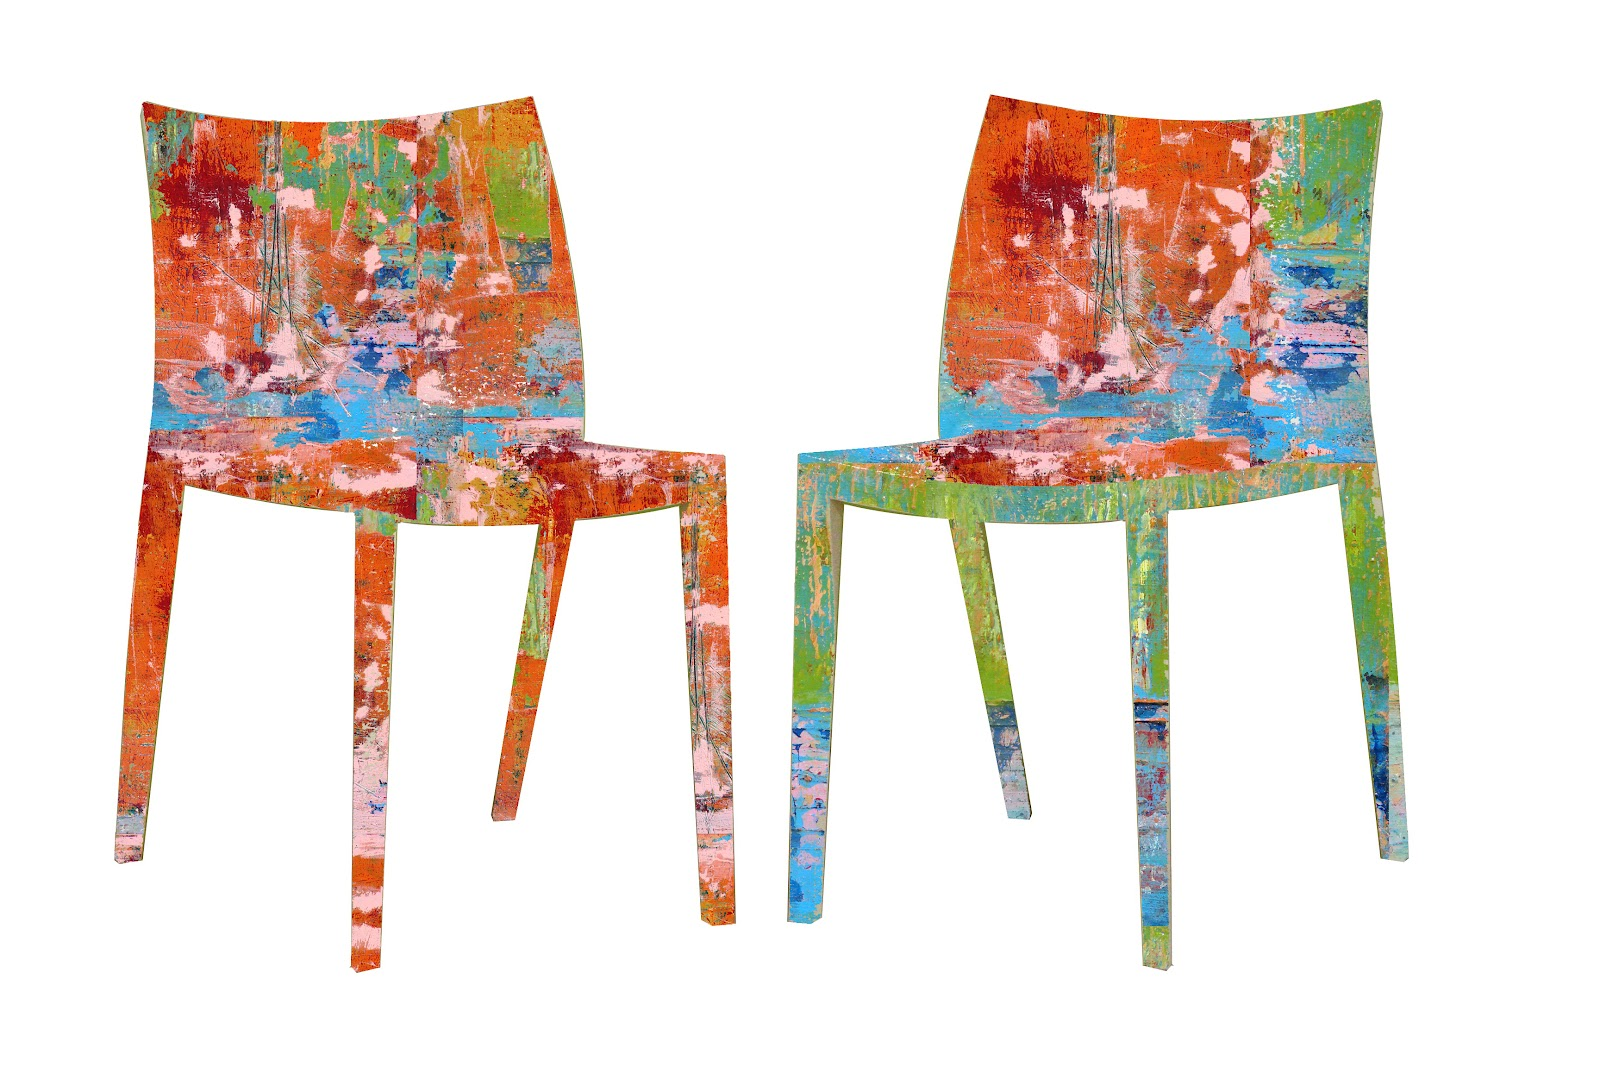 How To Paint Plastic Chairs Wooden High For Babies Spills And Splatters Chair Art